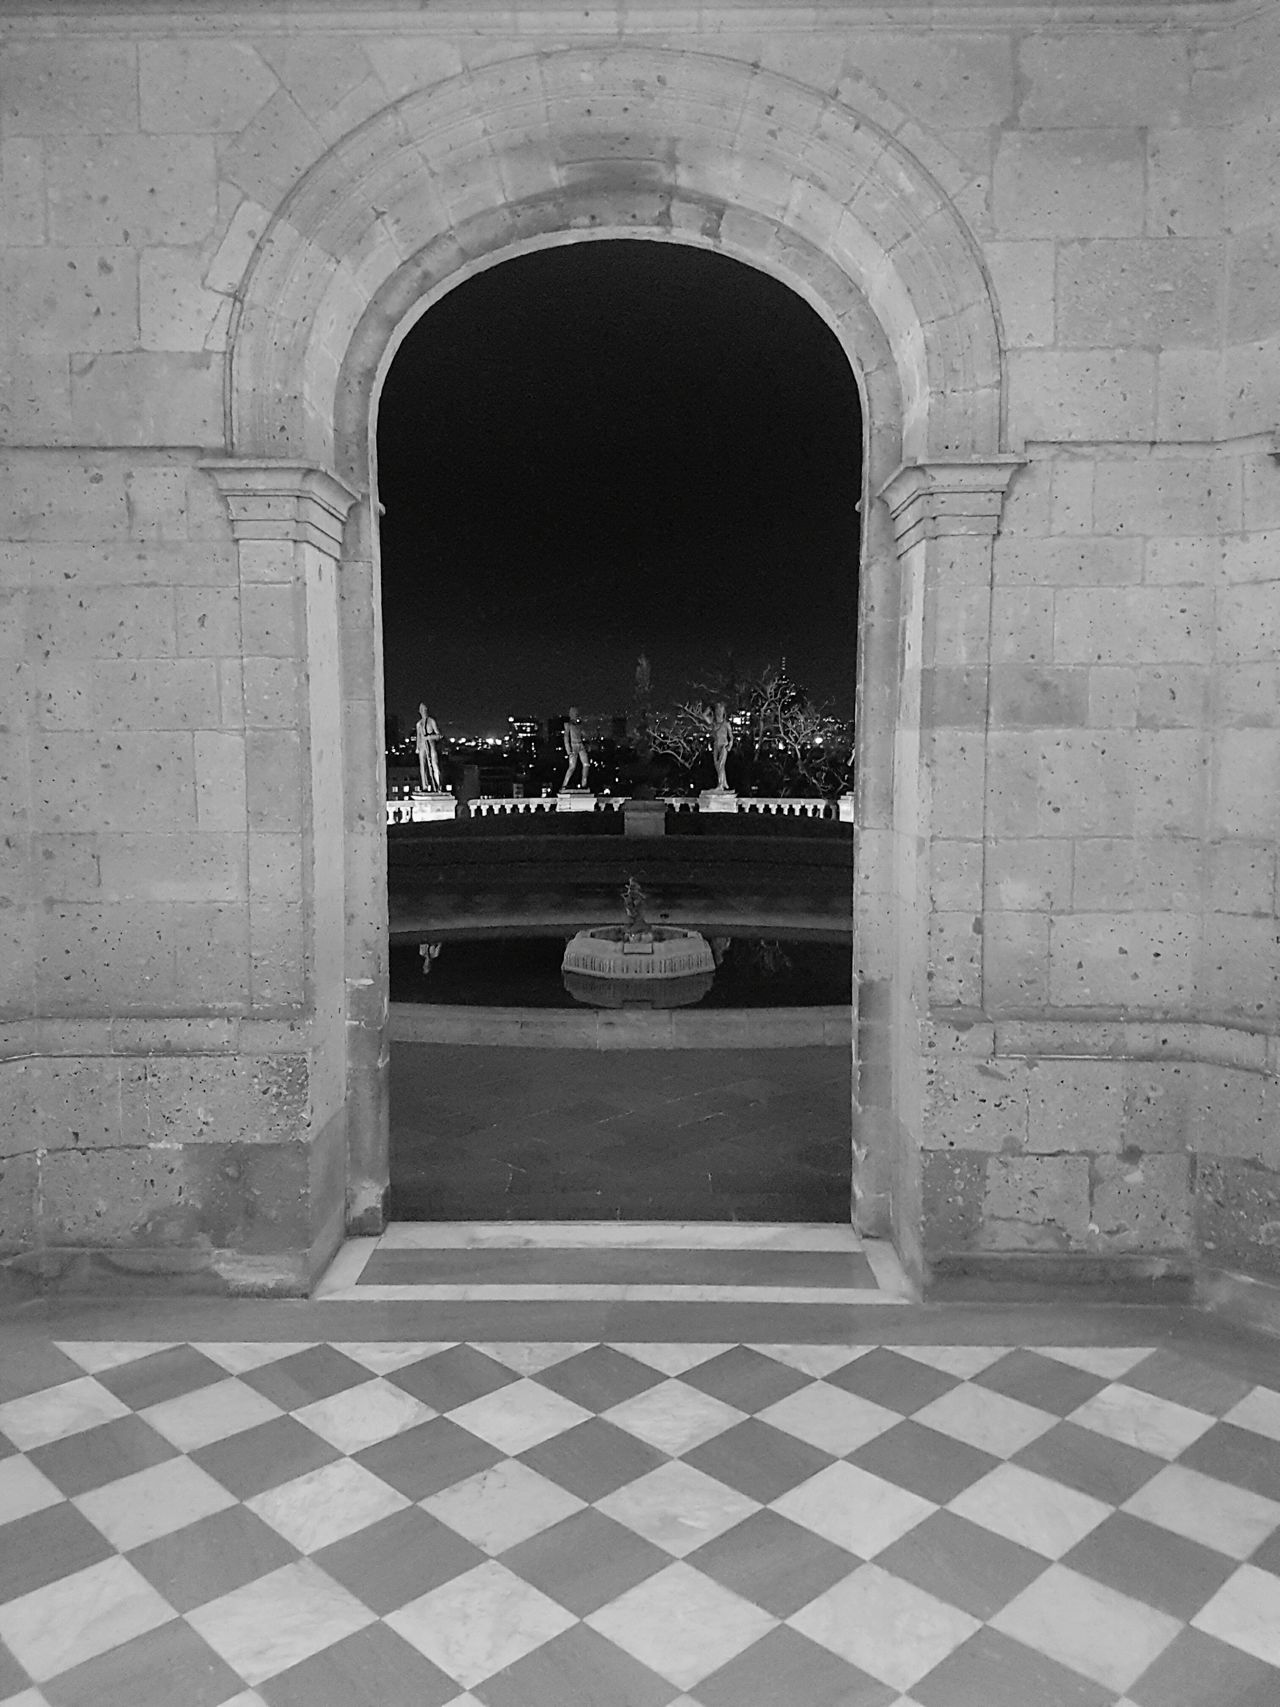 Arch Pattern Architecture Tiled Floor Travel Destinations Built Structure History Fountain No People War Memorial Indoors  Day Sculpture Chapultepec Castle Niños Heroes Historical Building B&w